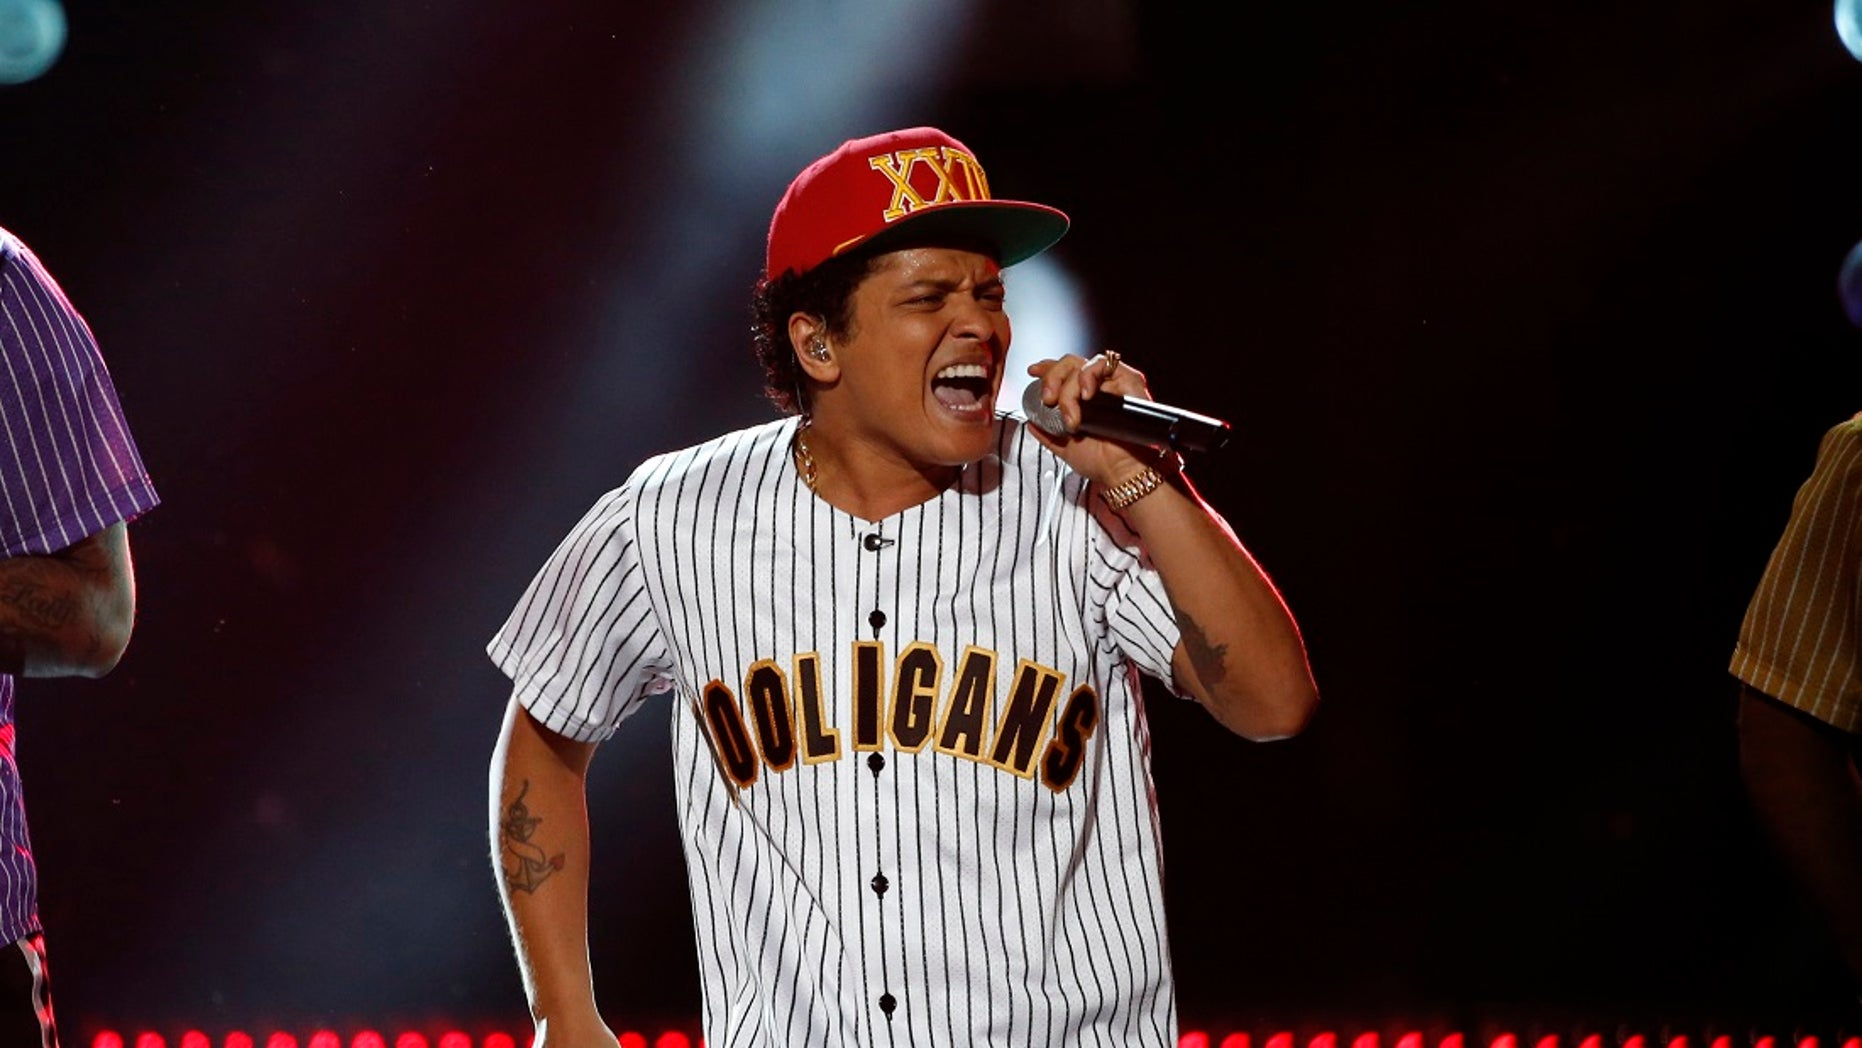 The American Music Awards will be broadcast live on Nov. 19. Bruno Mars is nominated for eight awards.